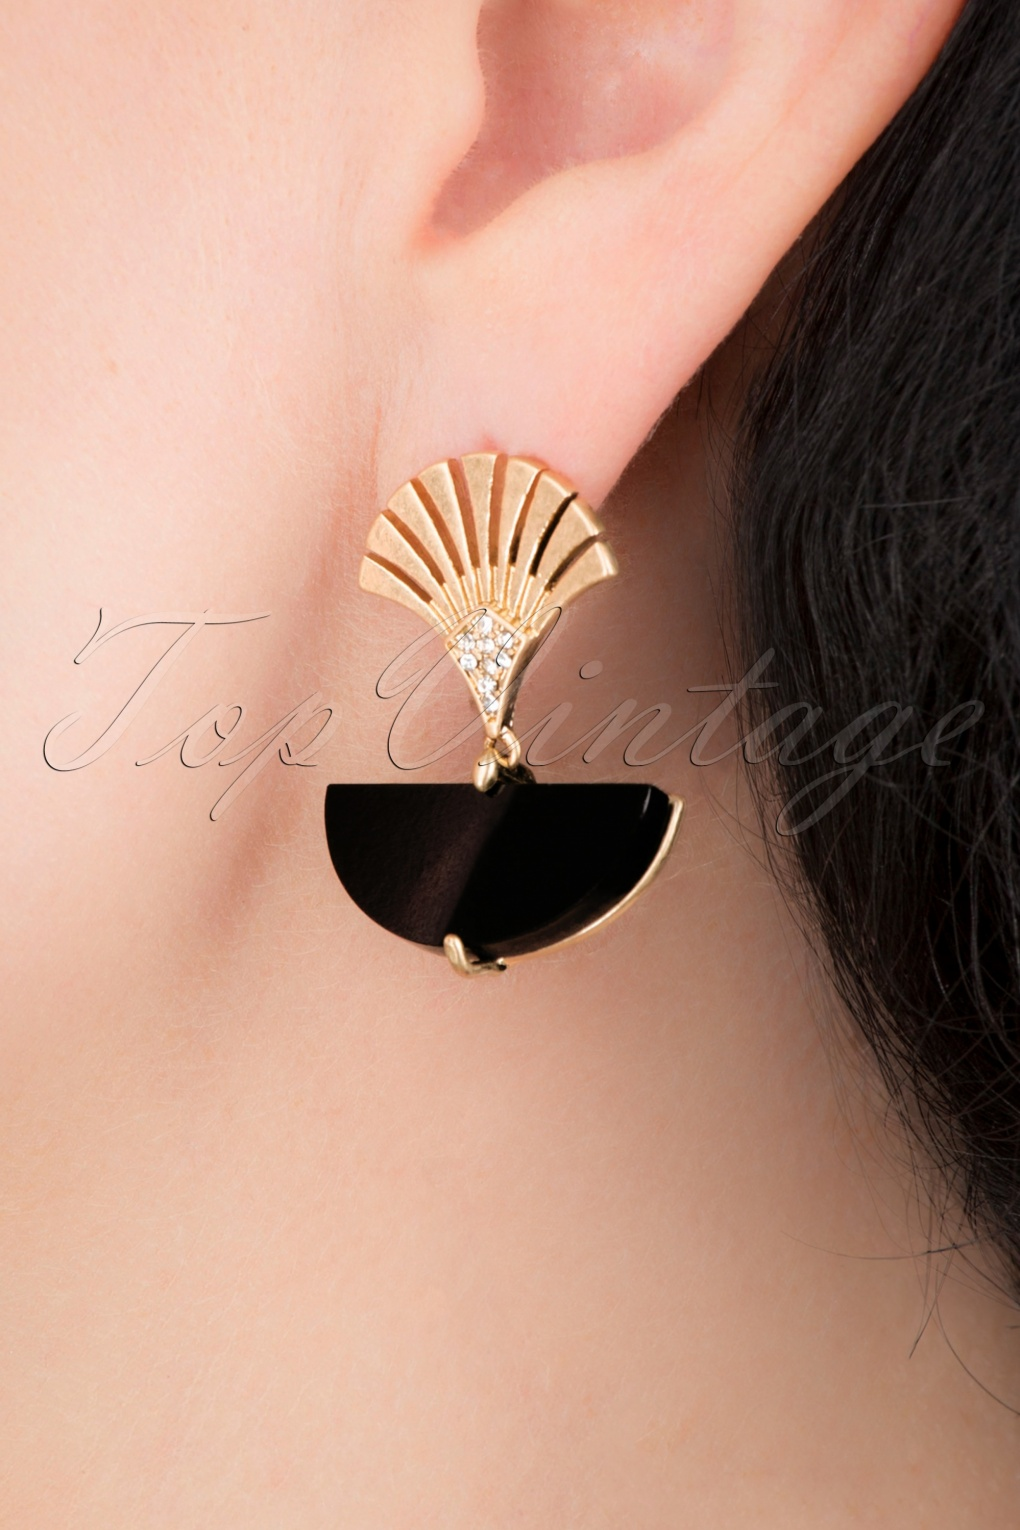 1920s Gatsby Jewelry- Flapper Earrings, Necklaces, Bracelets 20s Art Deco Moon Earrings in Gold and Black £23.97 AT vintagedancer.com